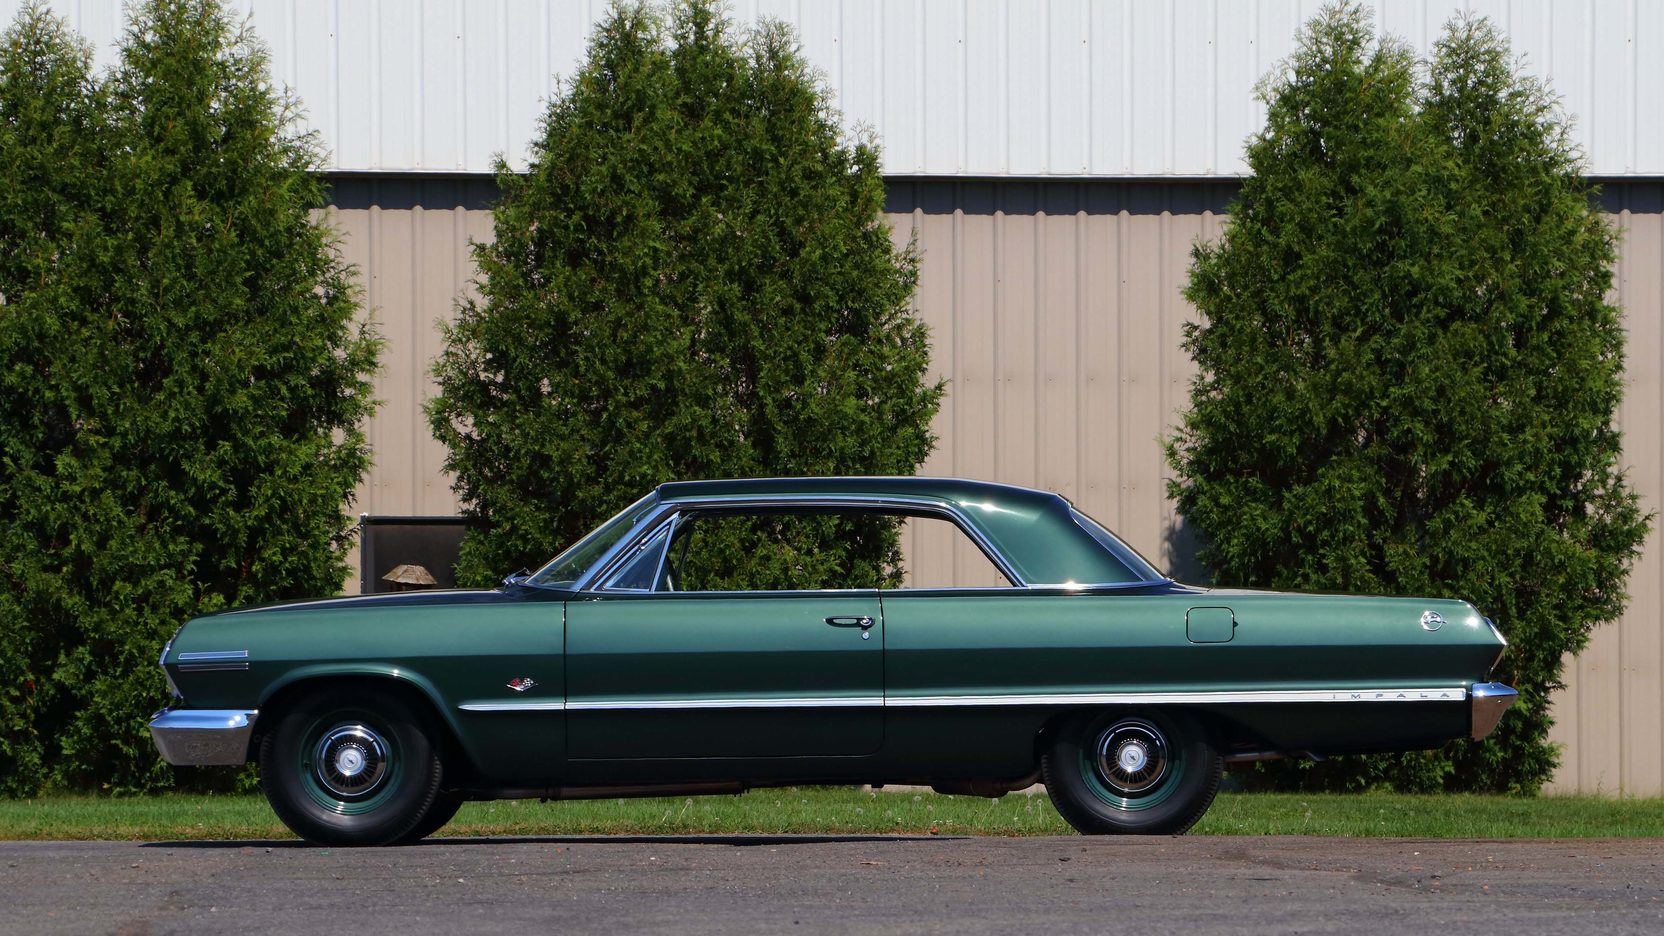 1963 Chevrolet Impala side profile